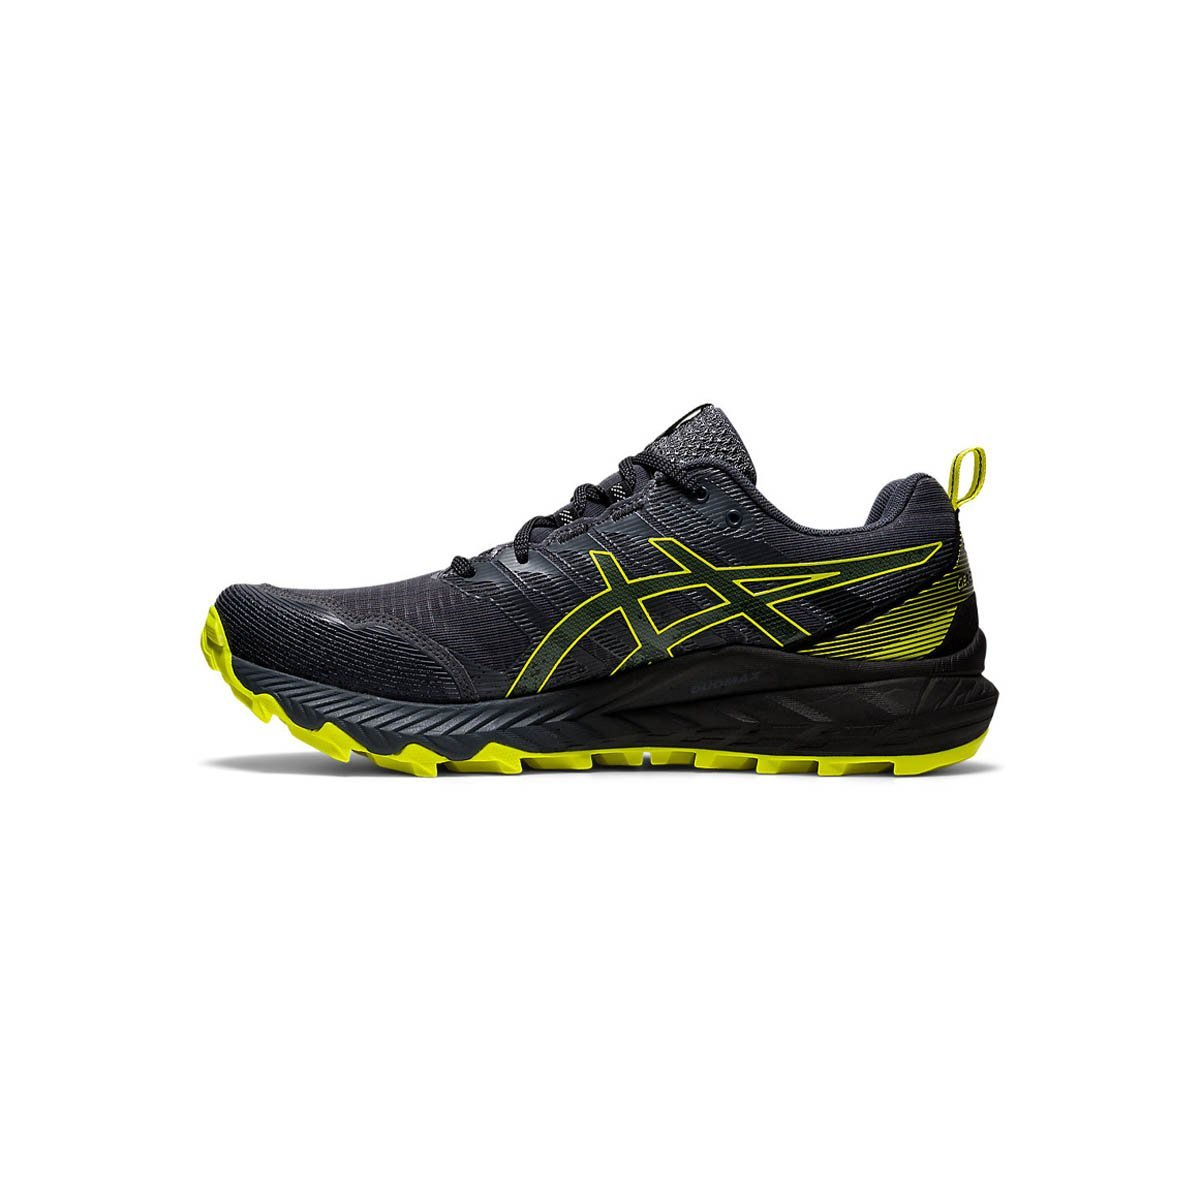 Asics Trabuco 9 Carrier Grey/Sour Yuzu (Mens) - Just Hockey